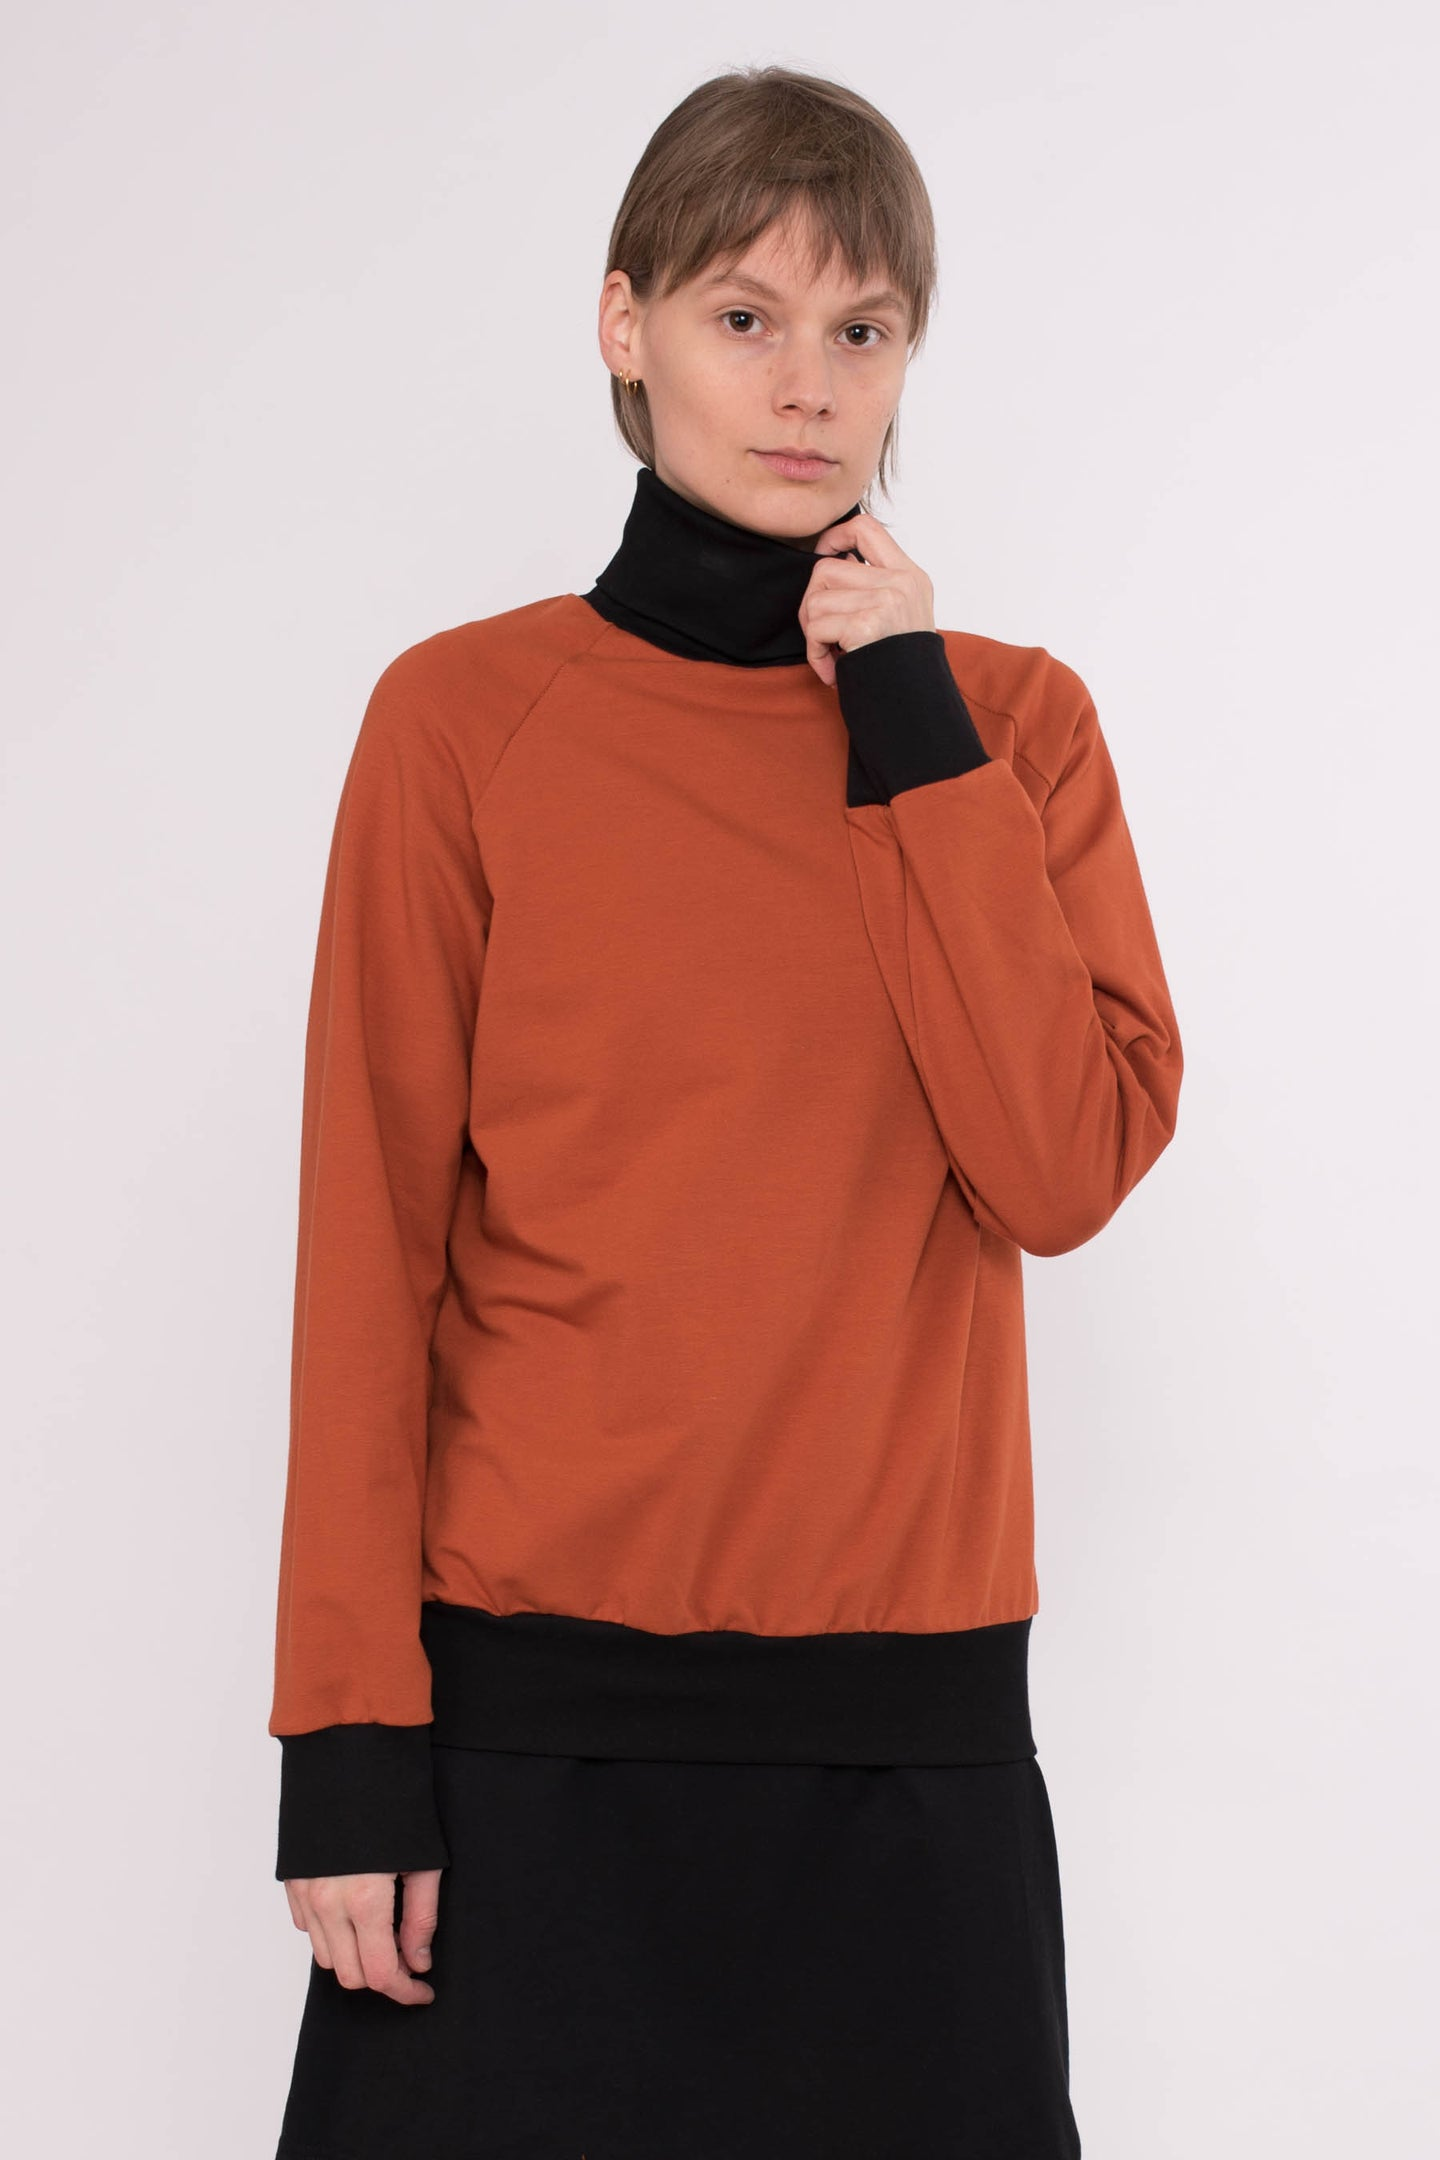 KOLO Berlin Sweater orange Streetwear gender neutral design urban wear kleidung online shop